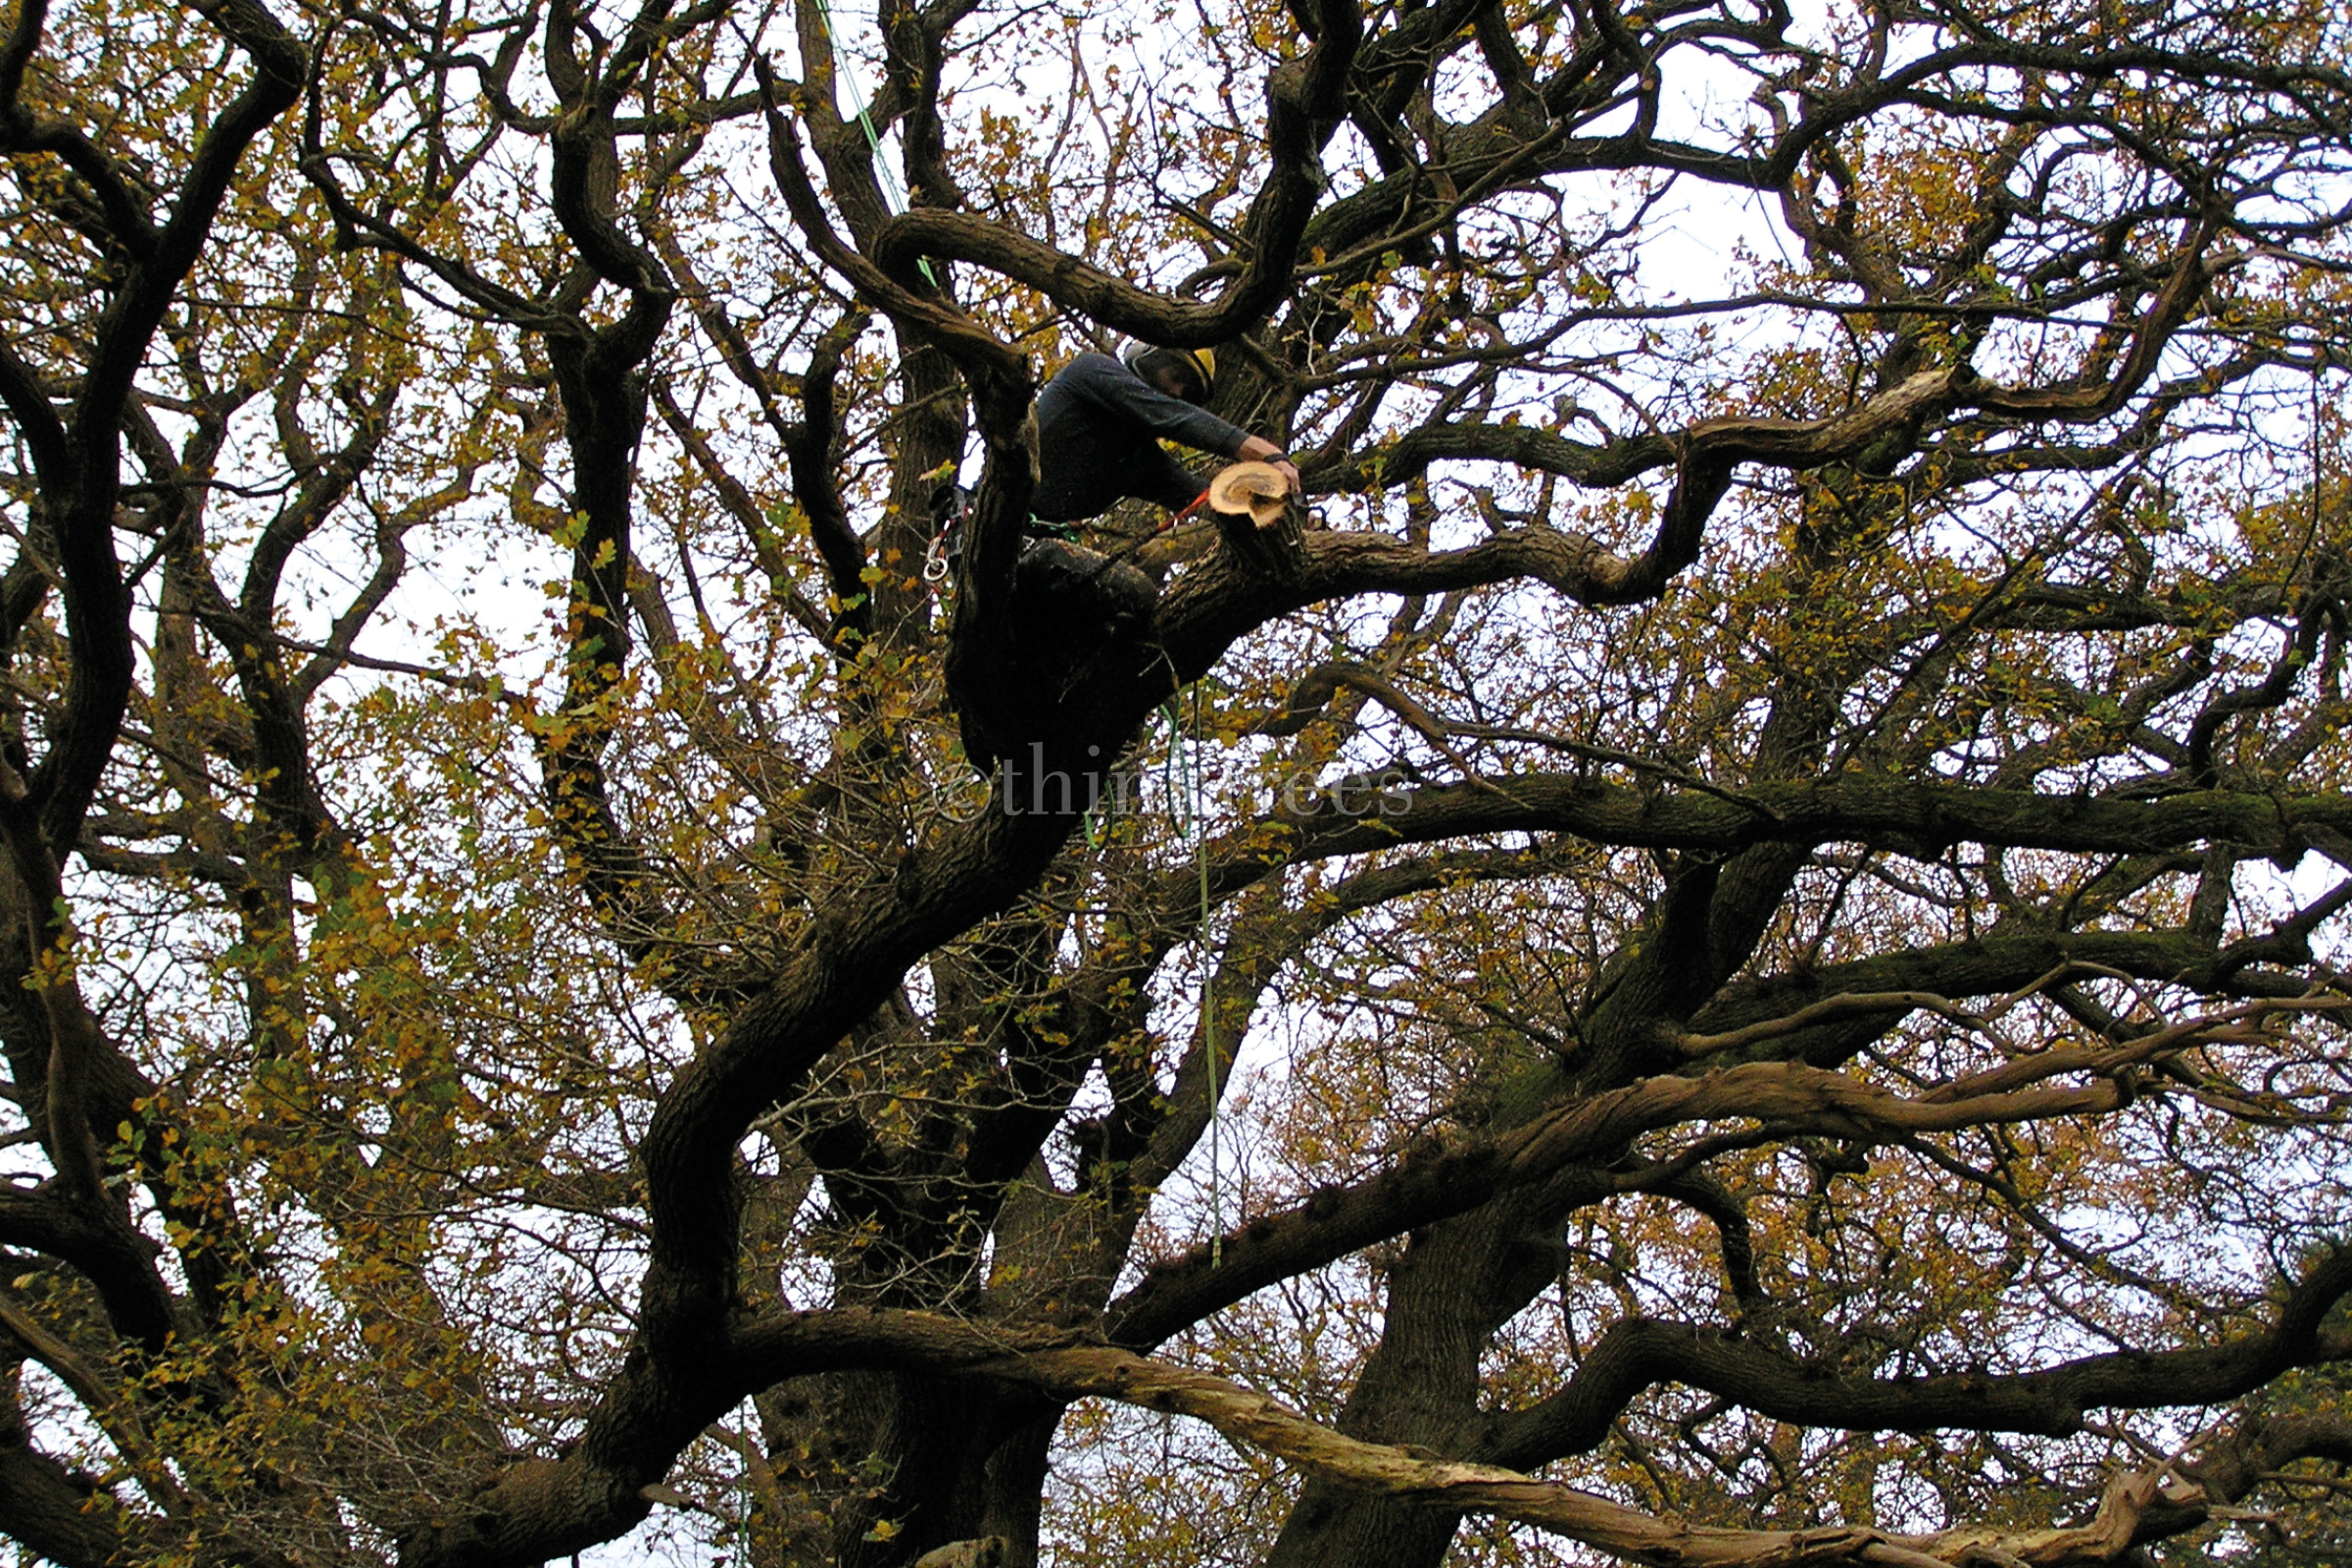 Arborist carrying out end weight reduction of a poorly tapered structural branch